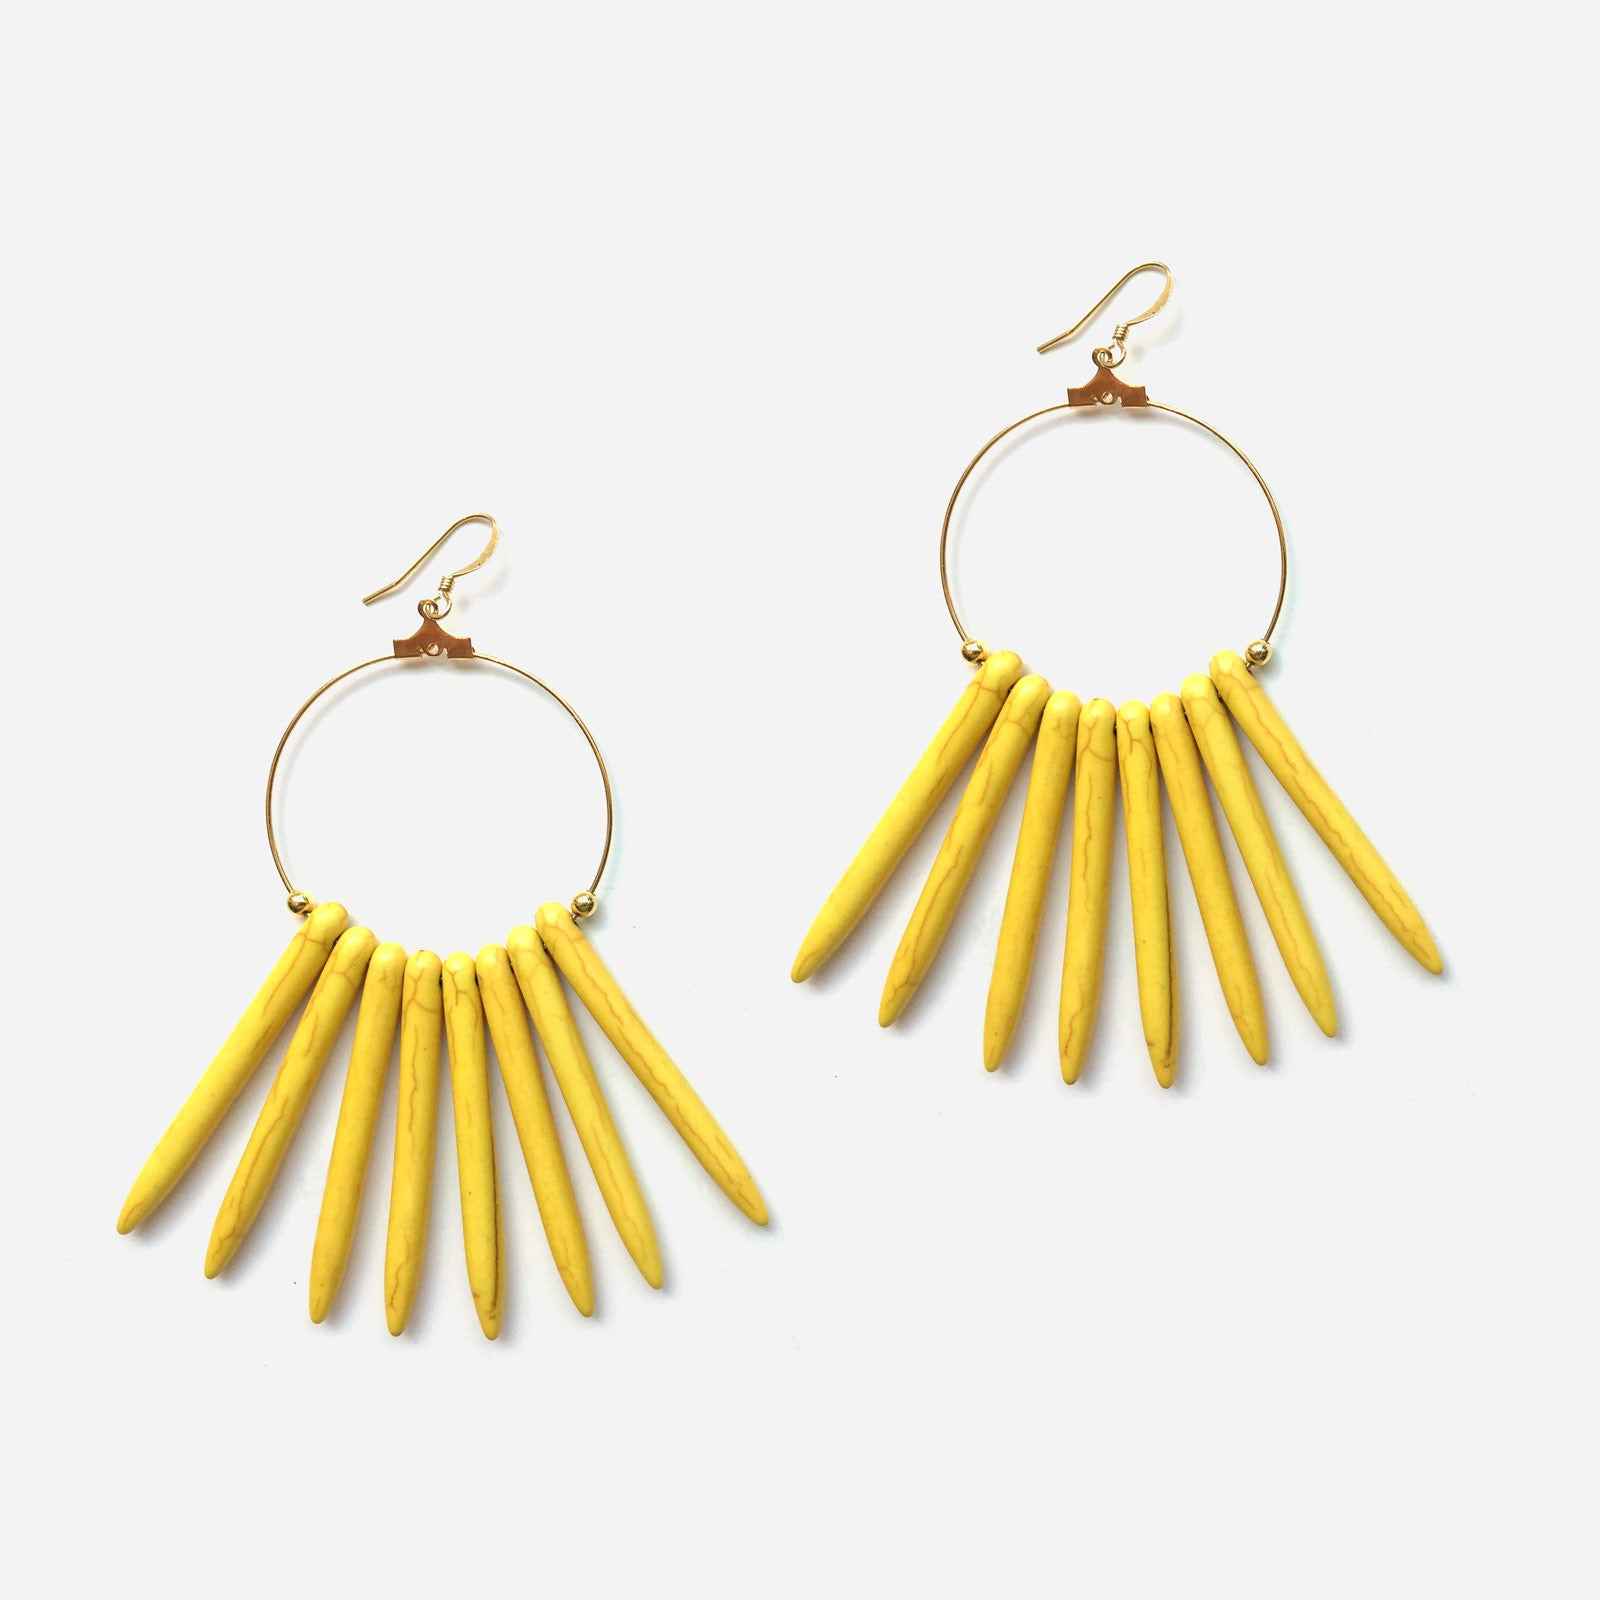 Chile Hoop Earrings Yellow